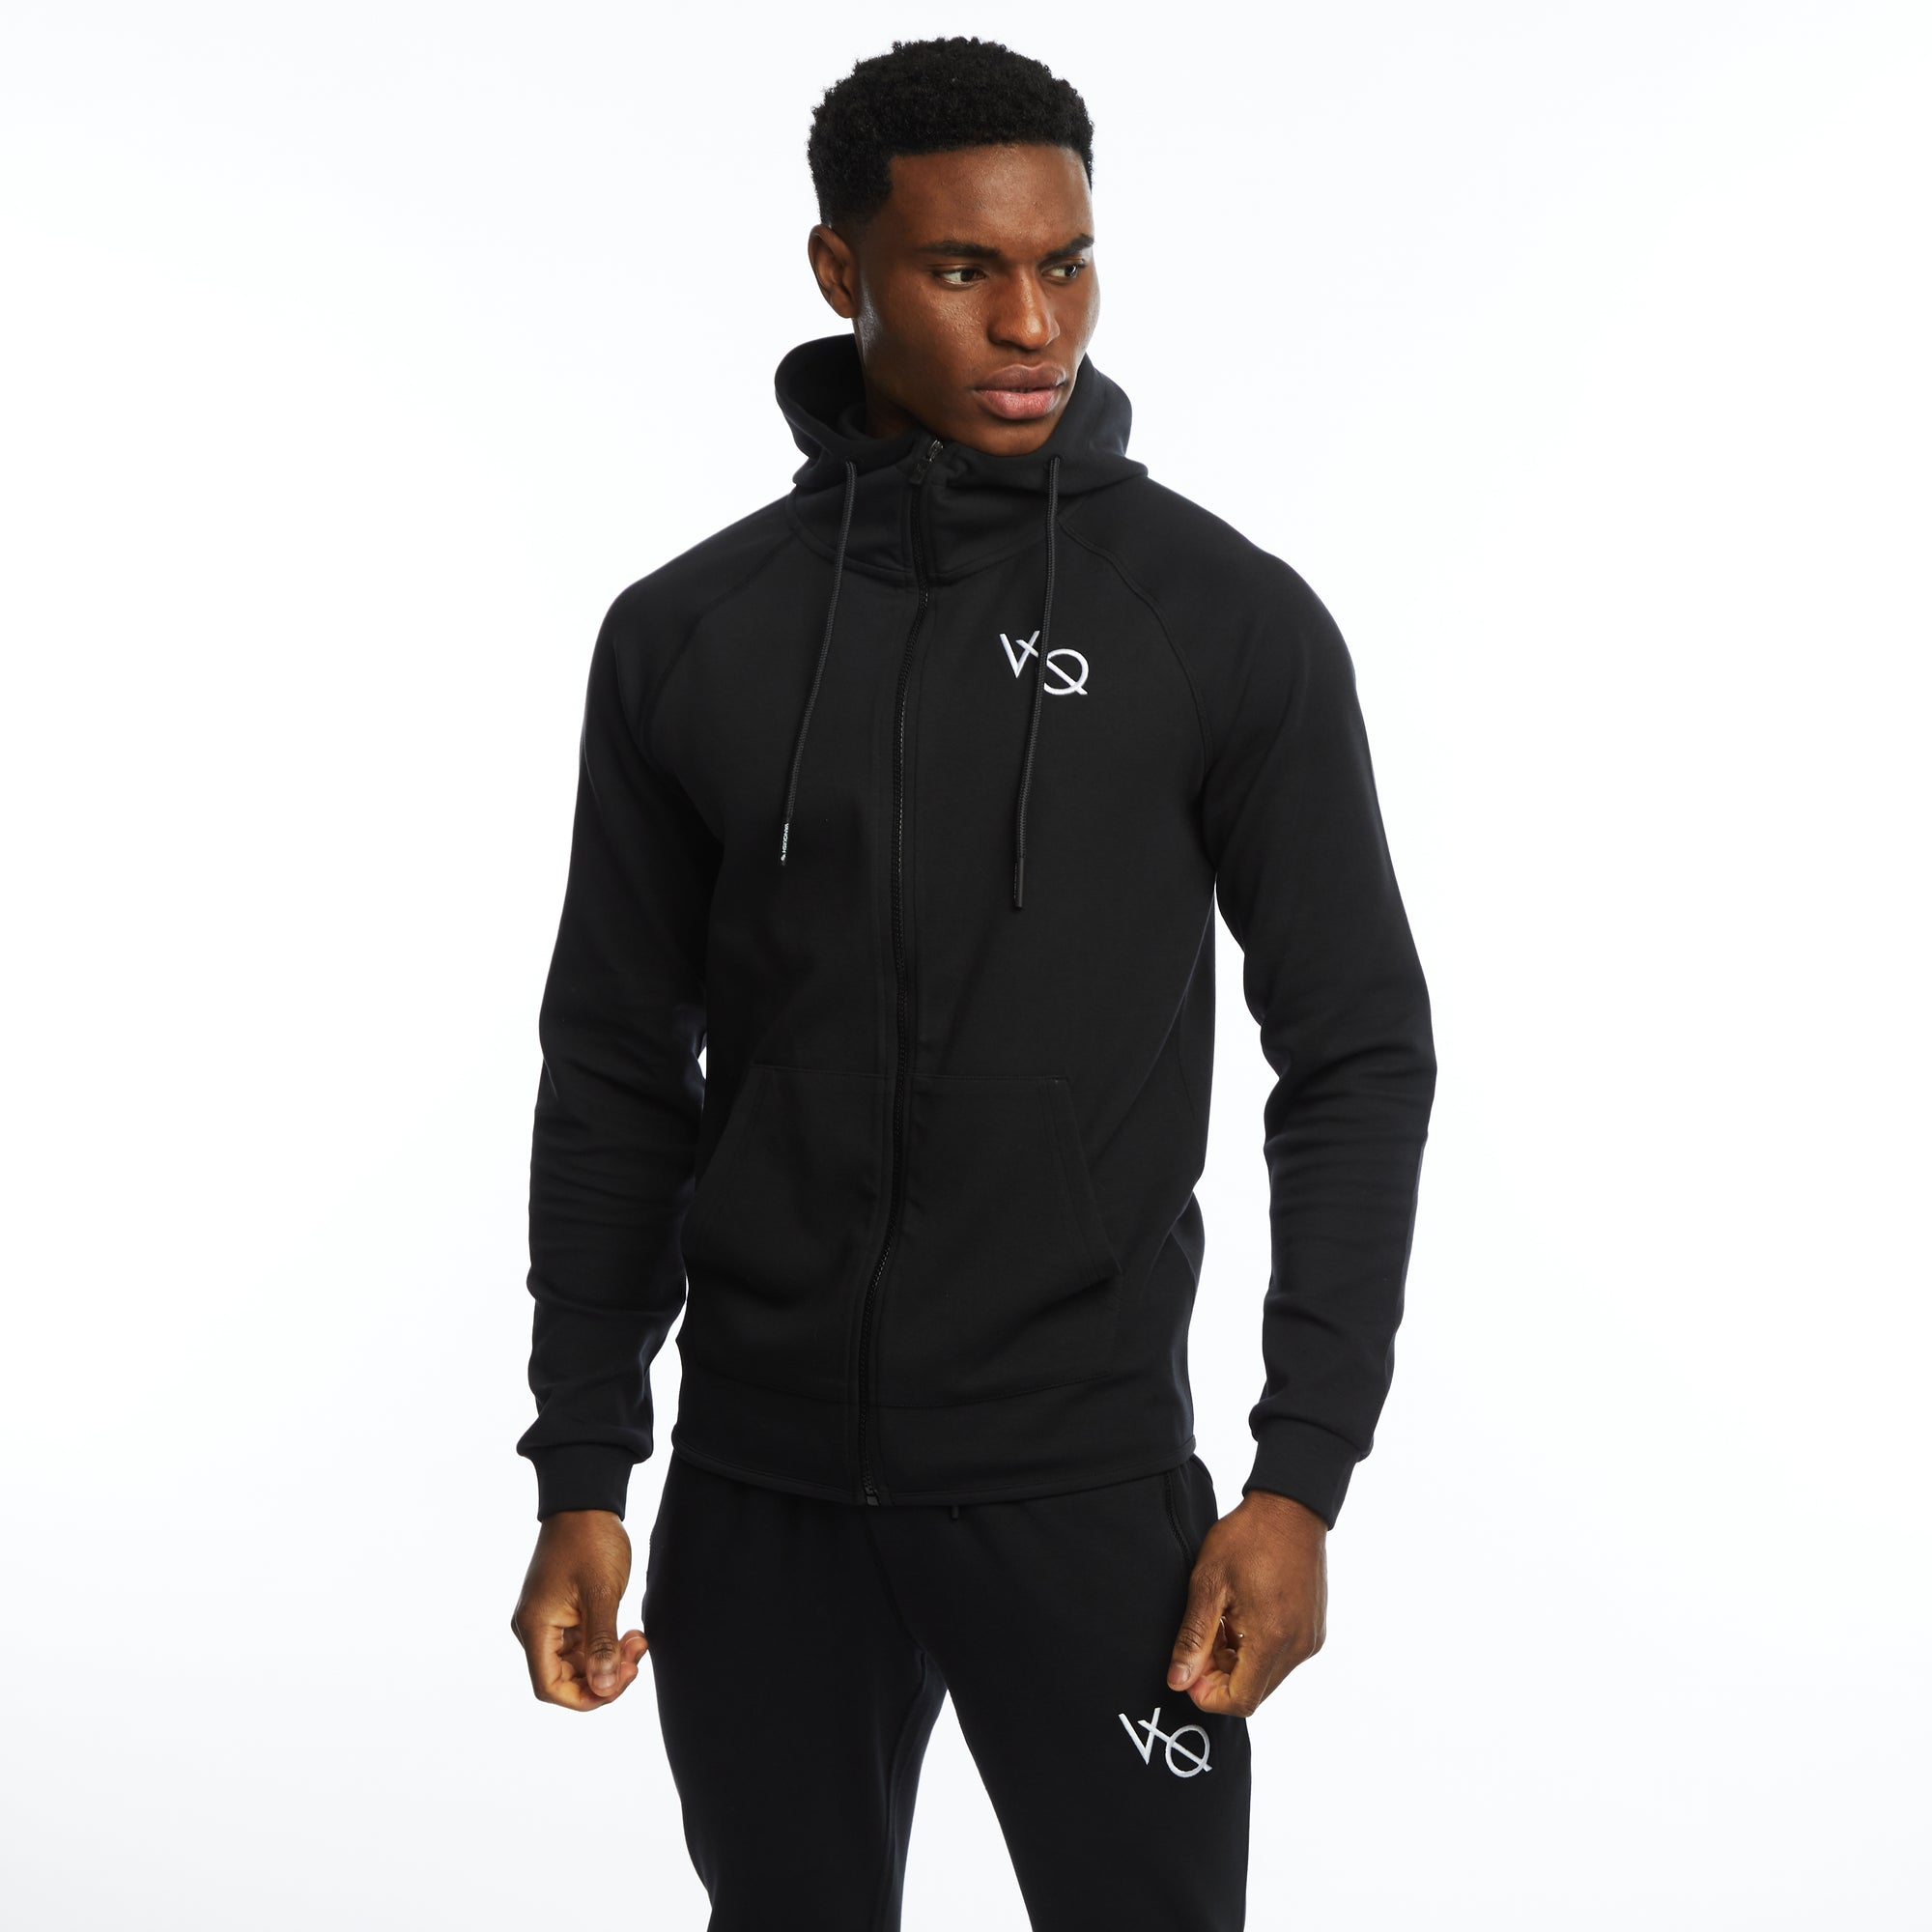 VQFIT Essential Black Full Zip Hoodie